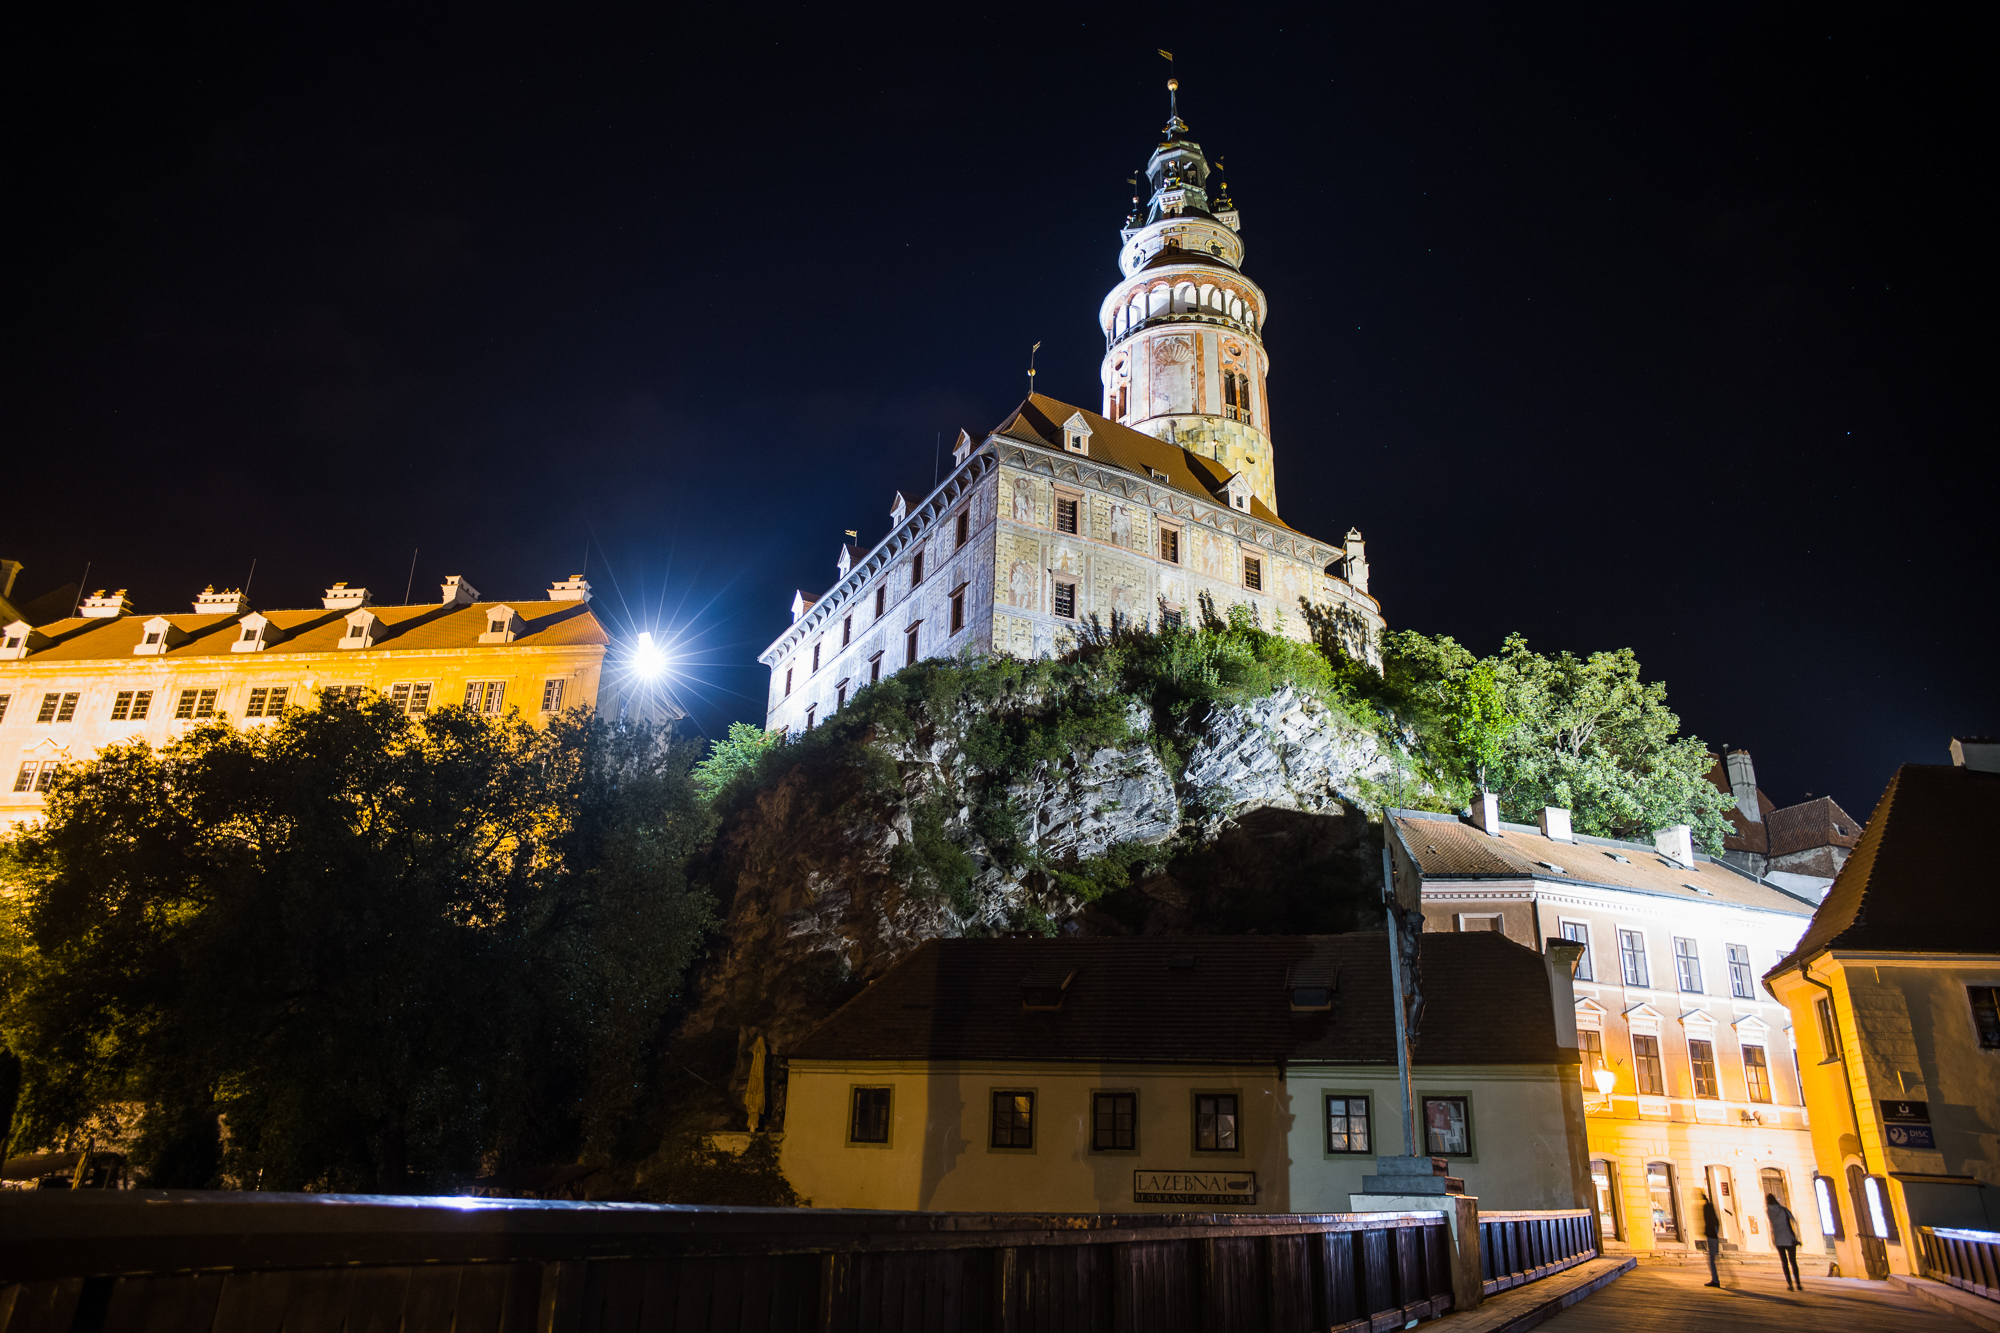 Česky Krumlov castle at night as seen from a bridge crossing the Vltava River in the old town